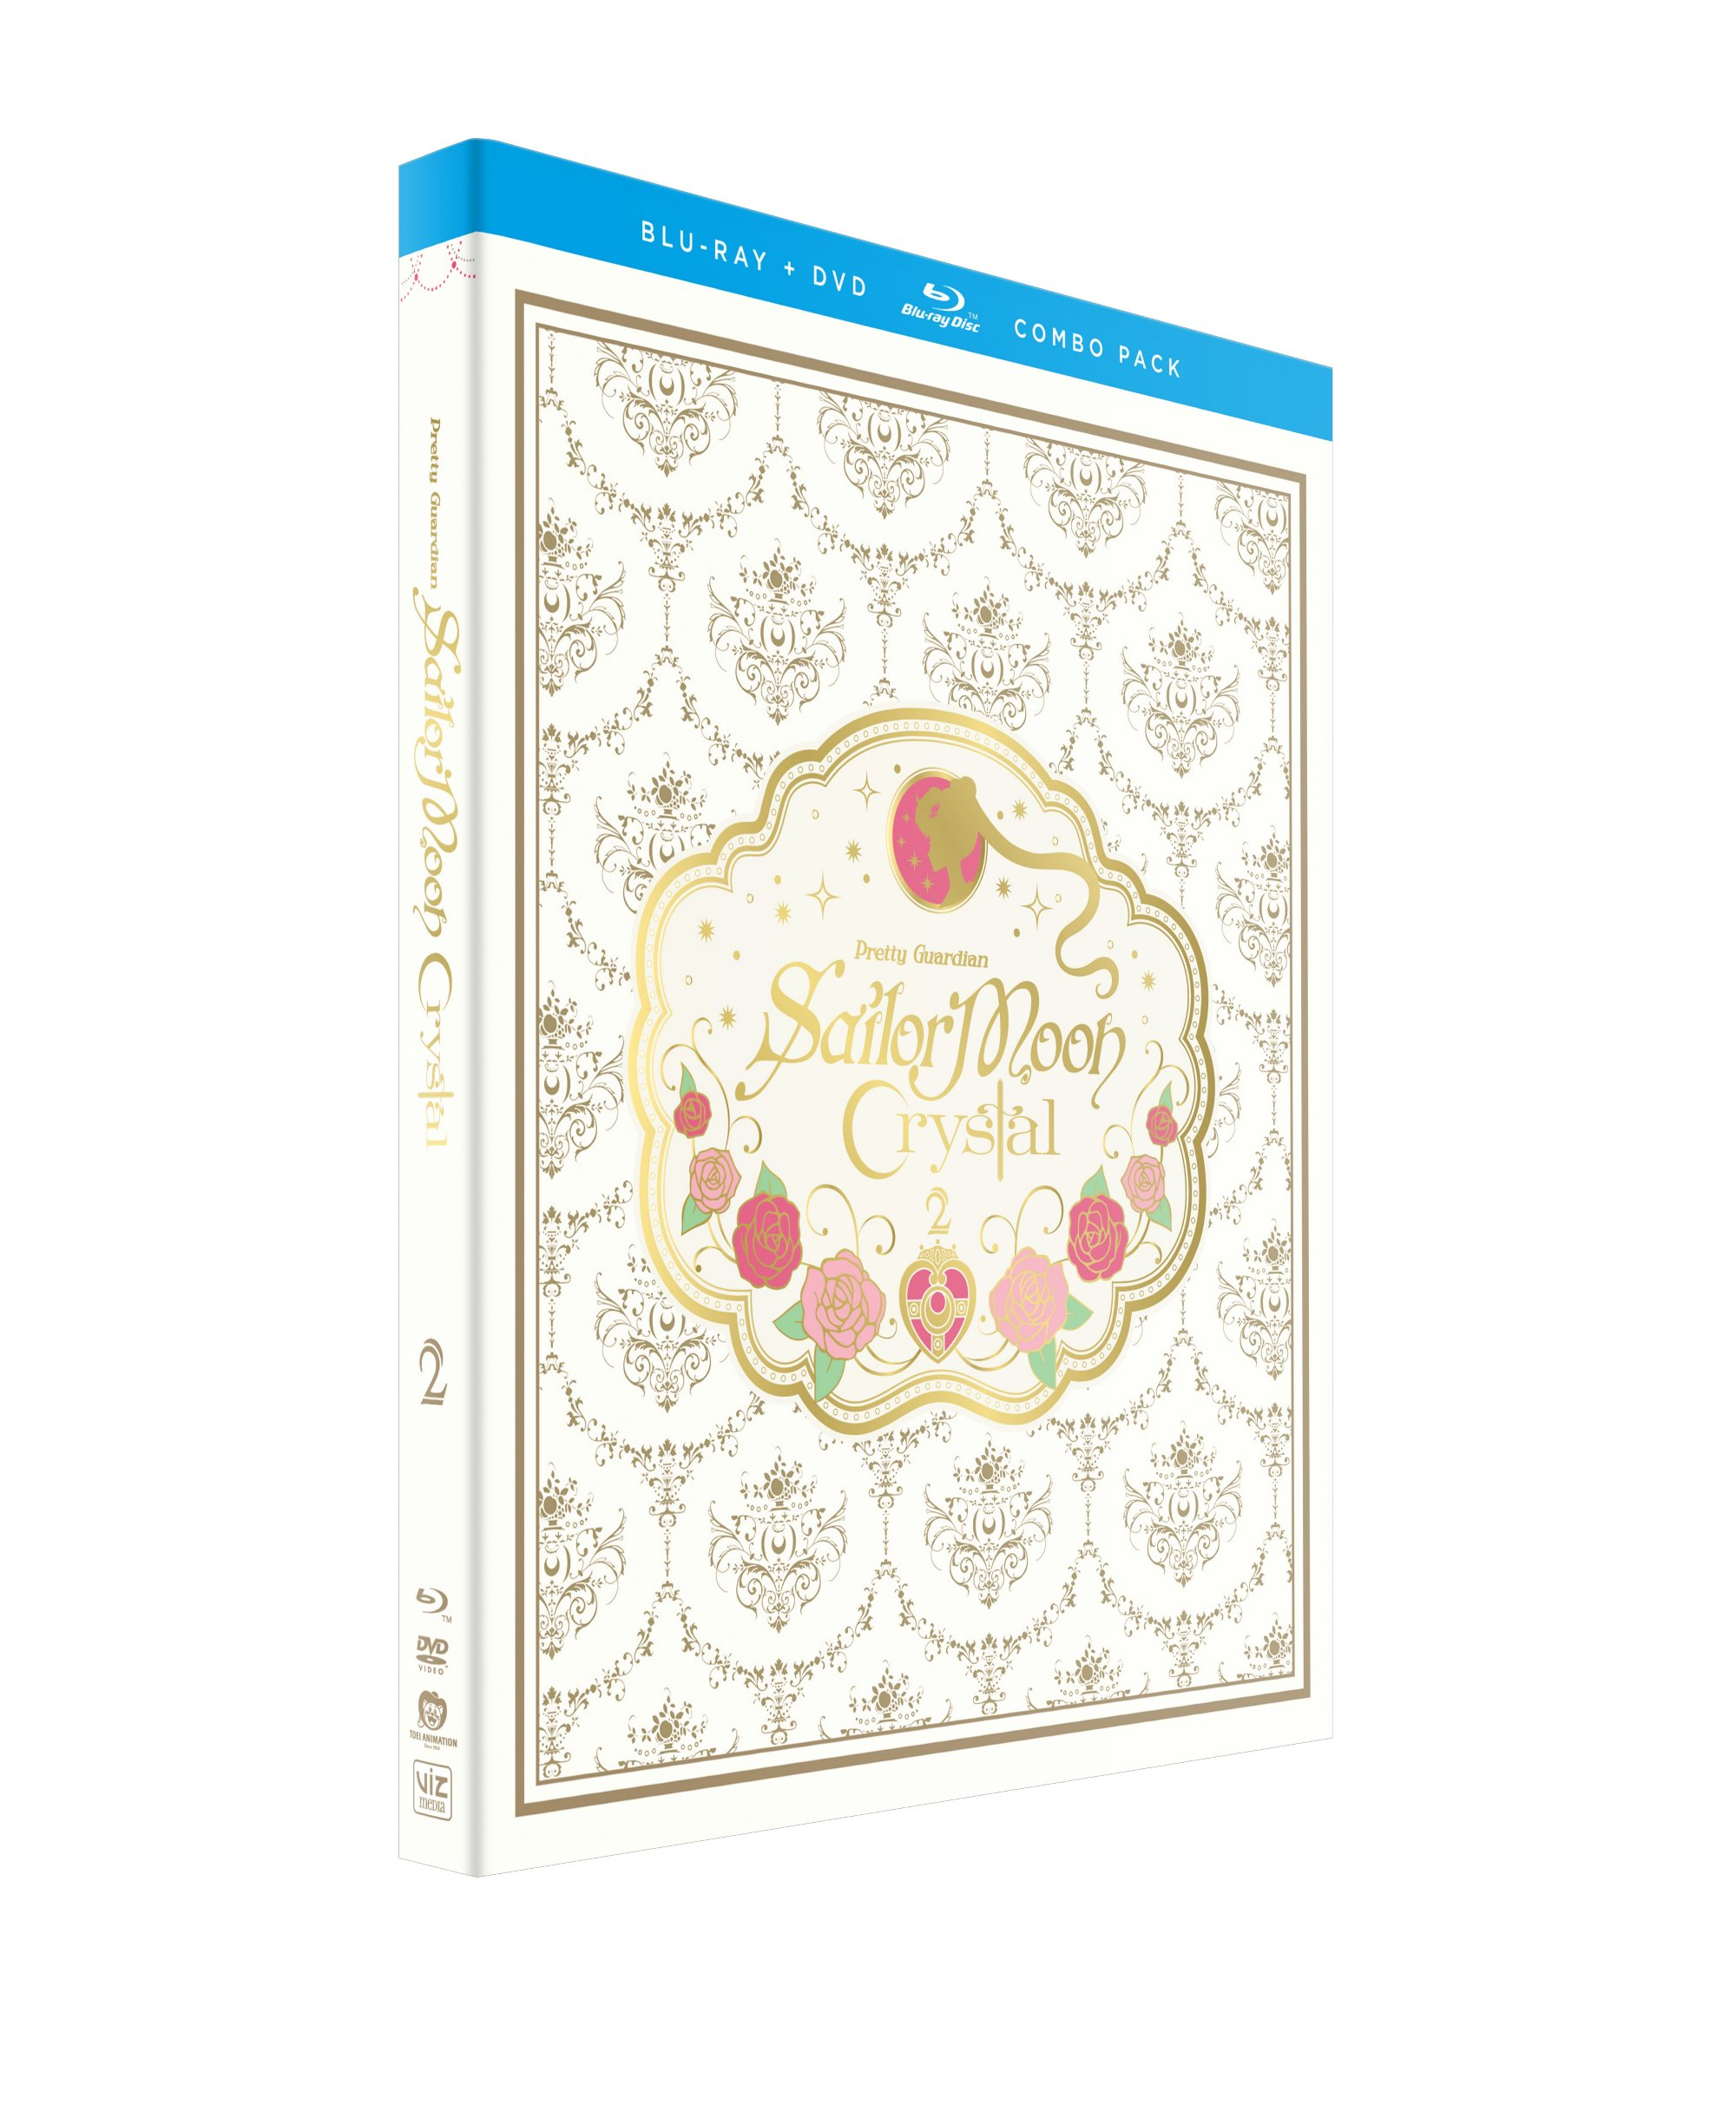 Sailor Moon Crystal Set 2 Limited Edition Blu-ray/DVD + GWP